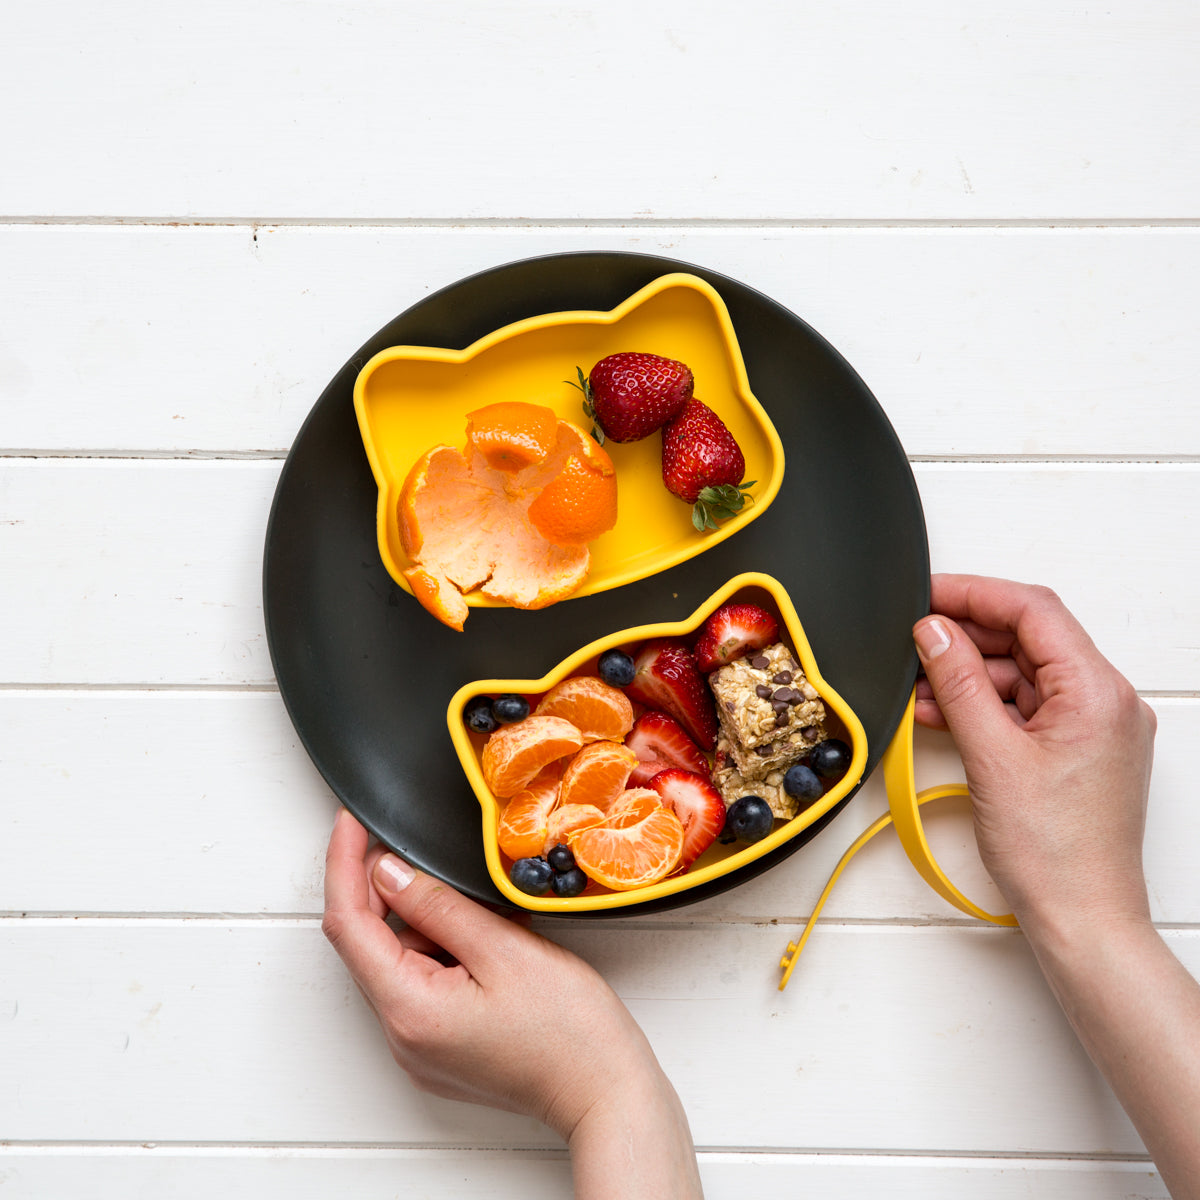 Yellow cat snackie filled with fruit